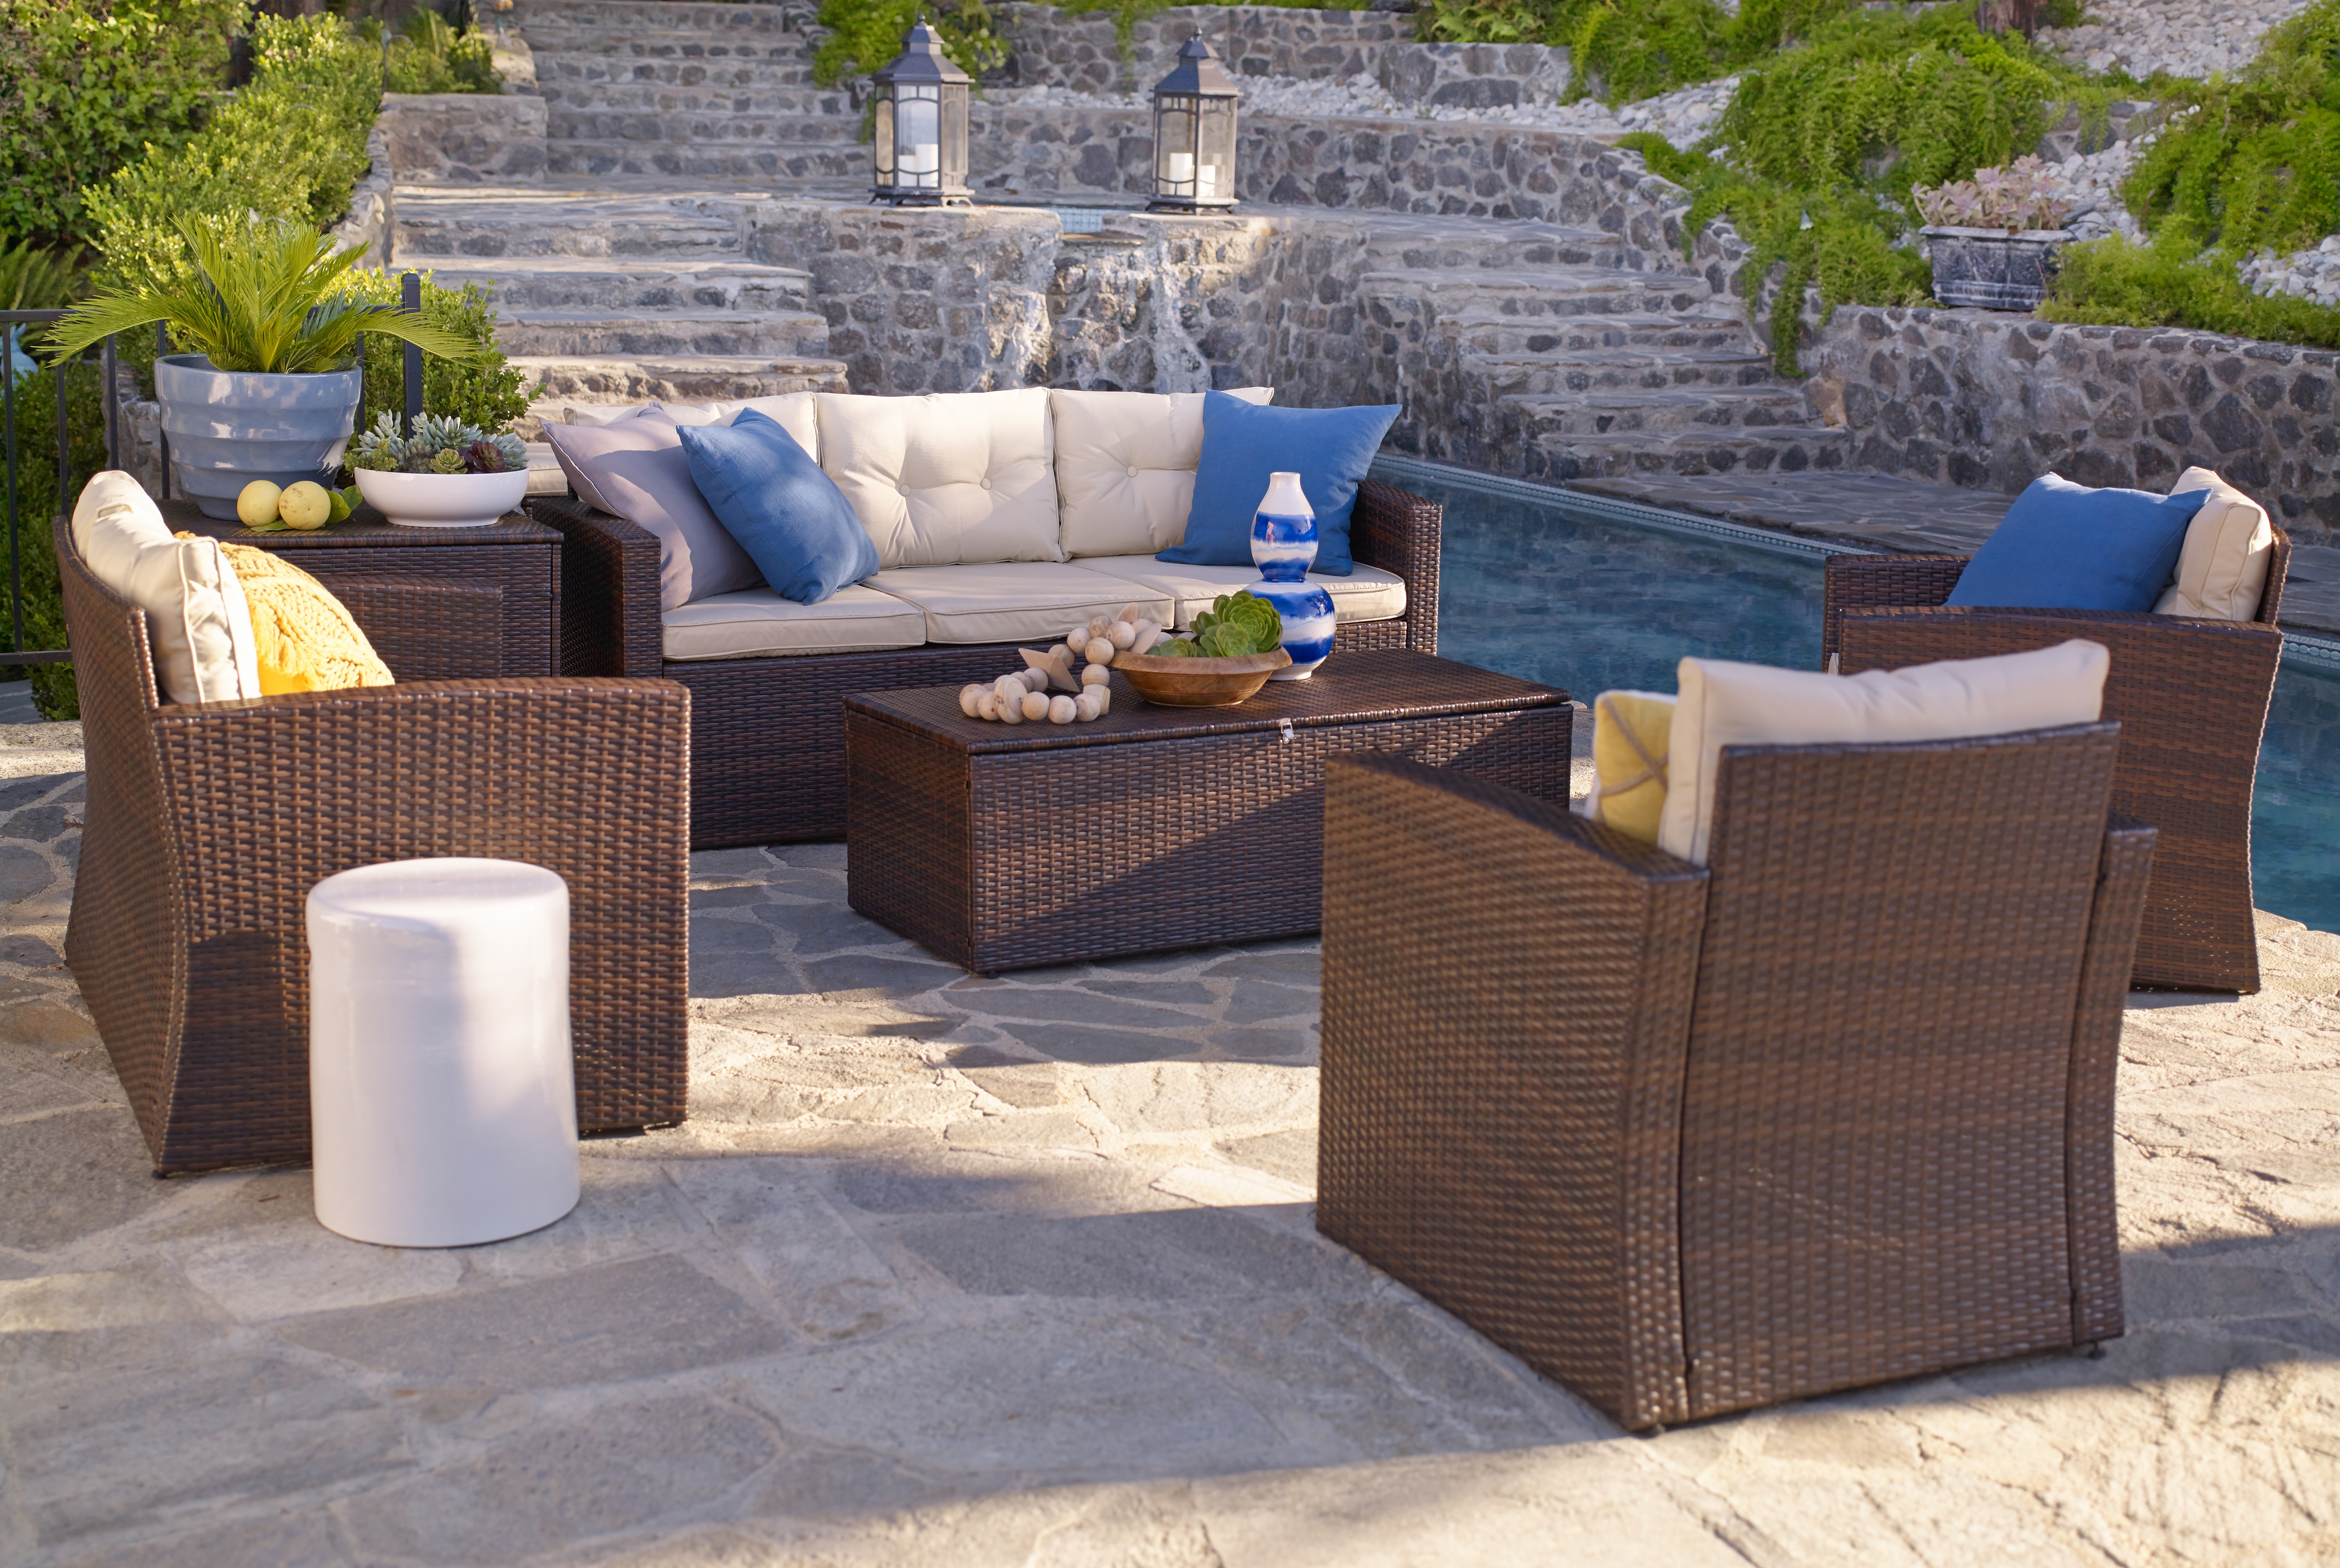 Well Liked Patio Conversation Set With Storage With Regard To Rio 6 Piece All Weather Wicker Conversation Set With Storage (View 18 of 20)